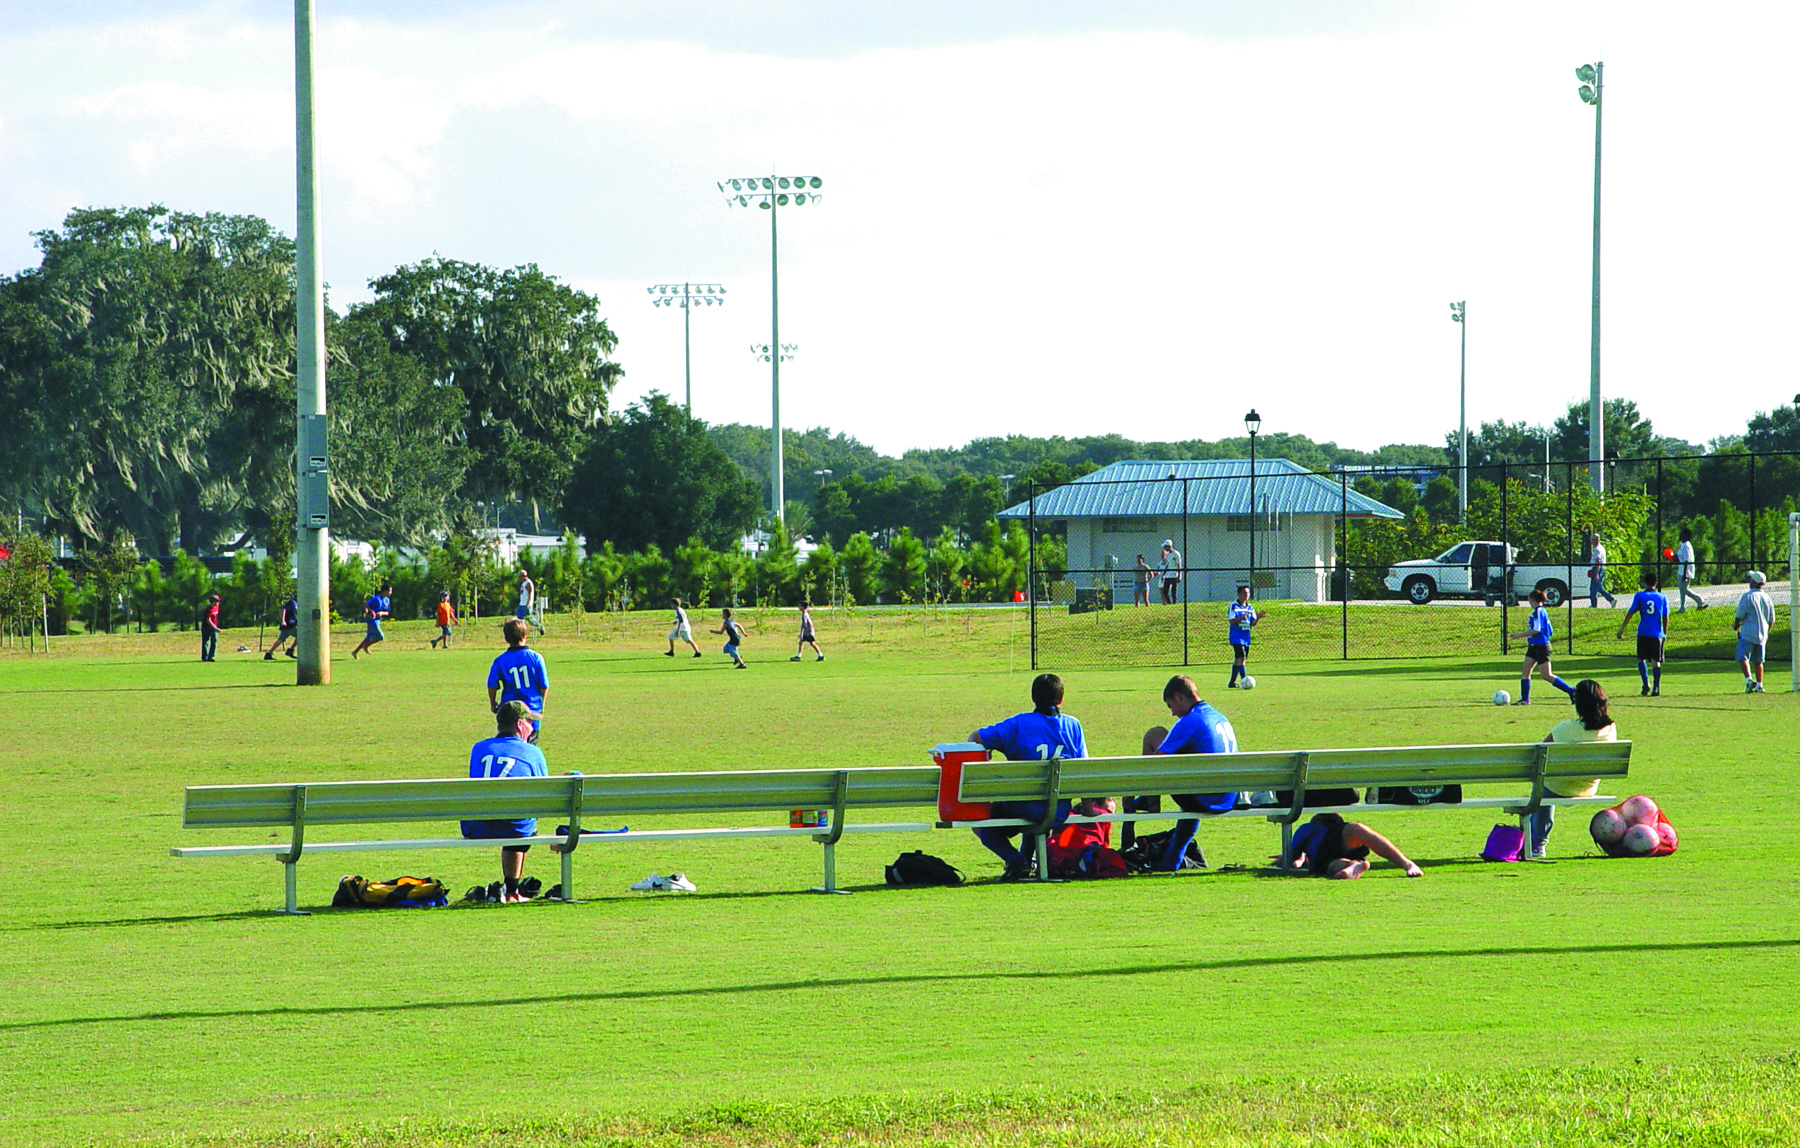 Soccer players watch the game at Lake Bonny Park